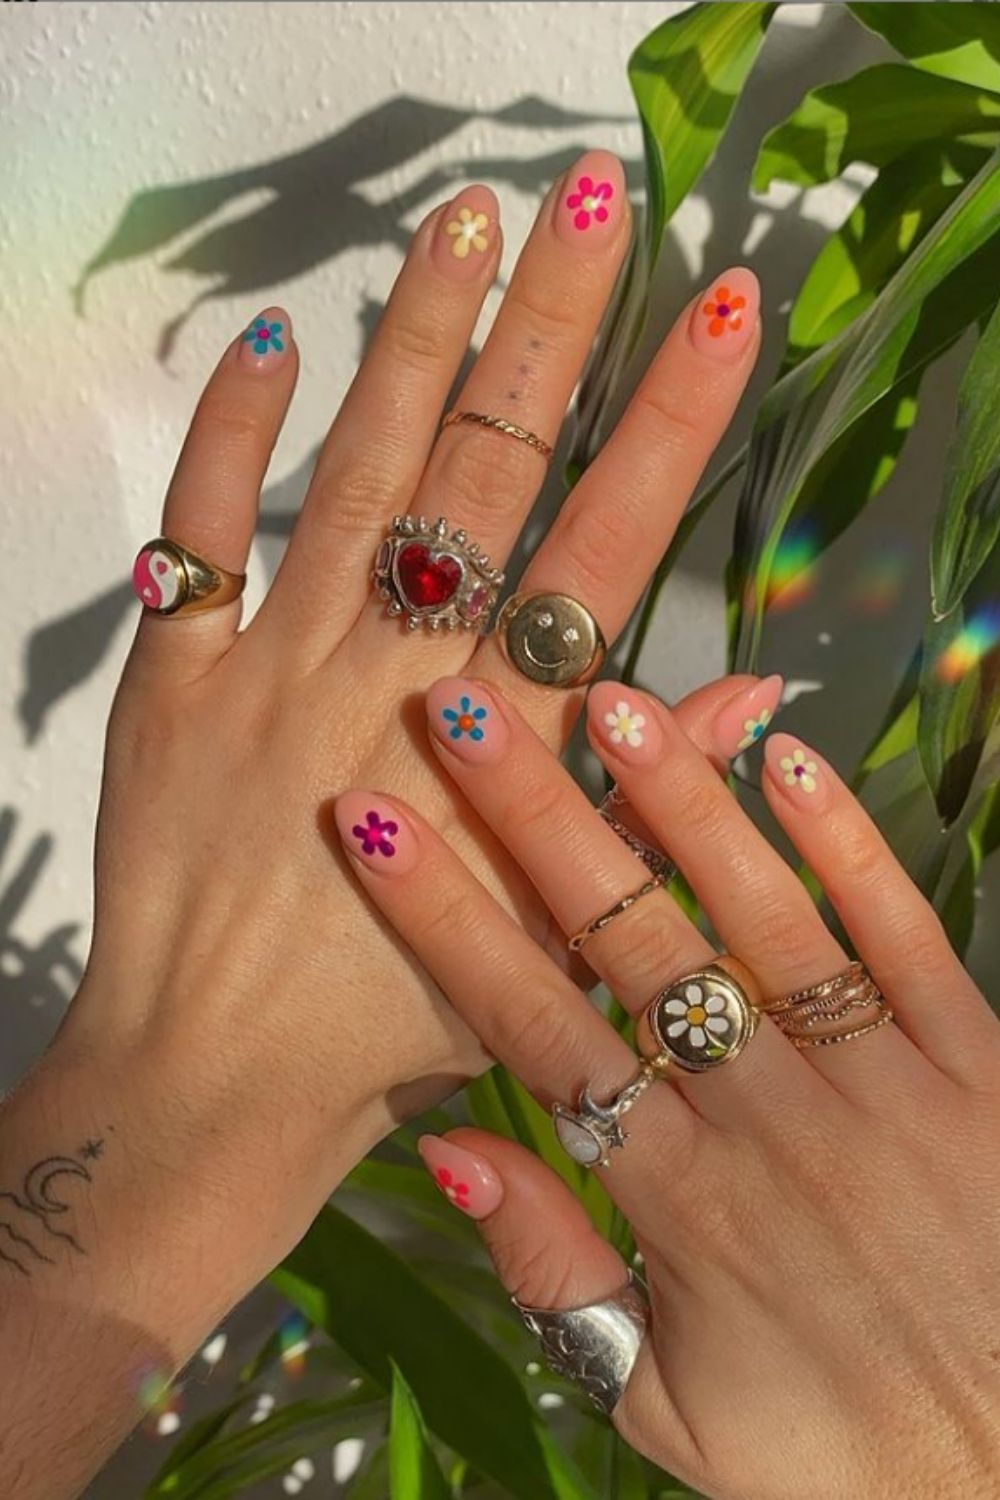 Summer Nail 2021 Color Trends You Want To Try!